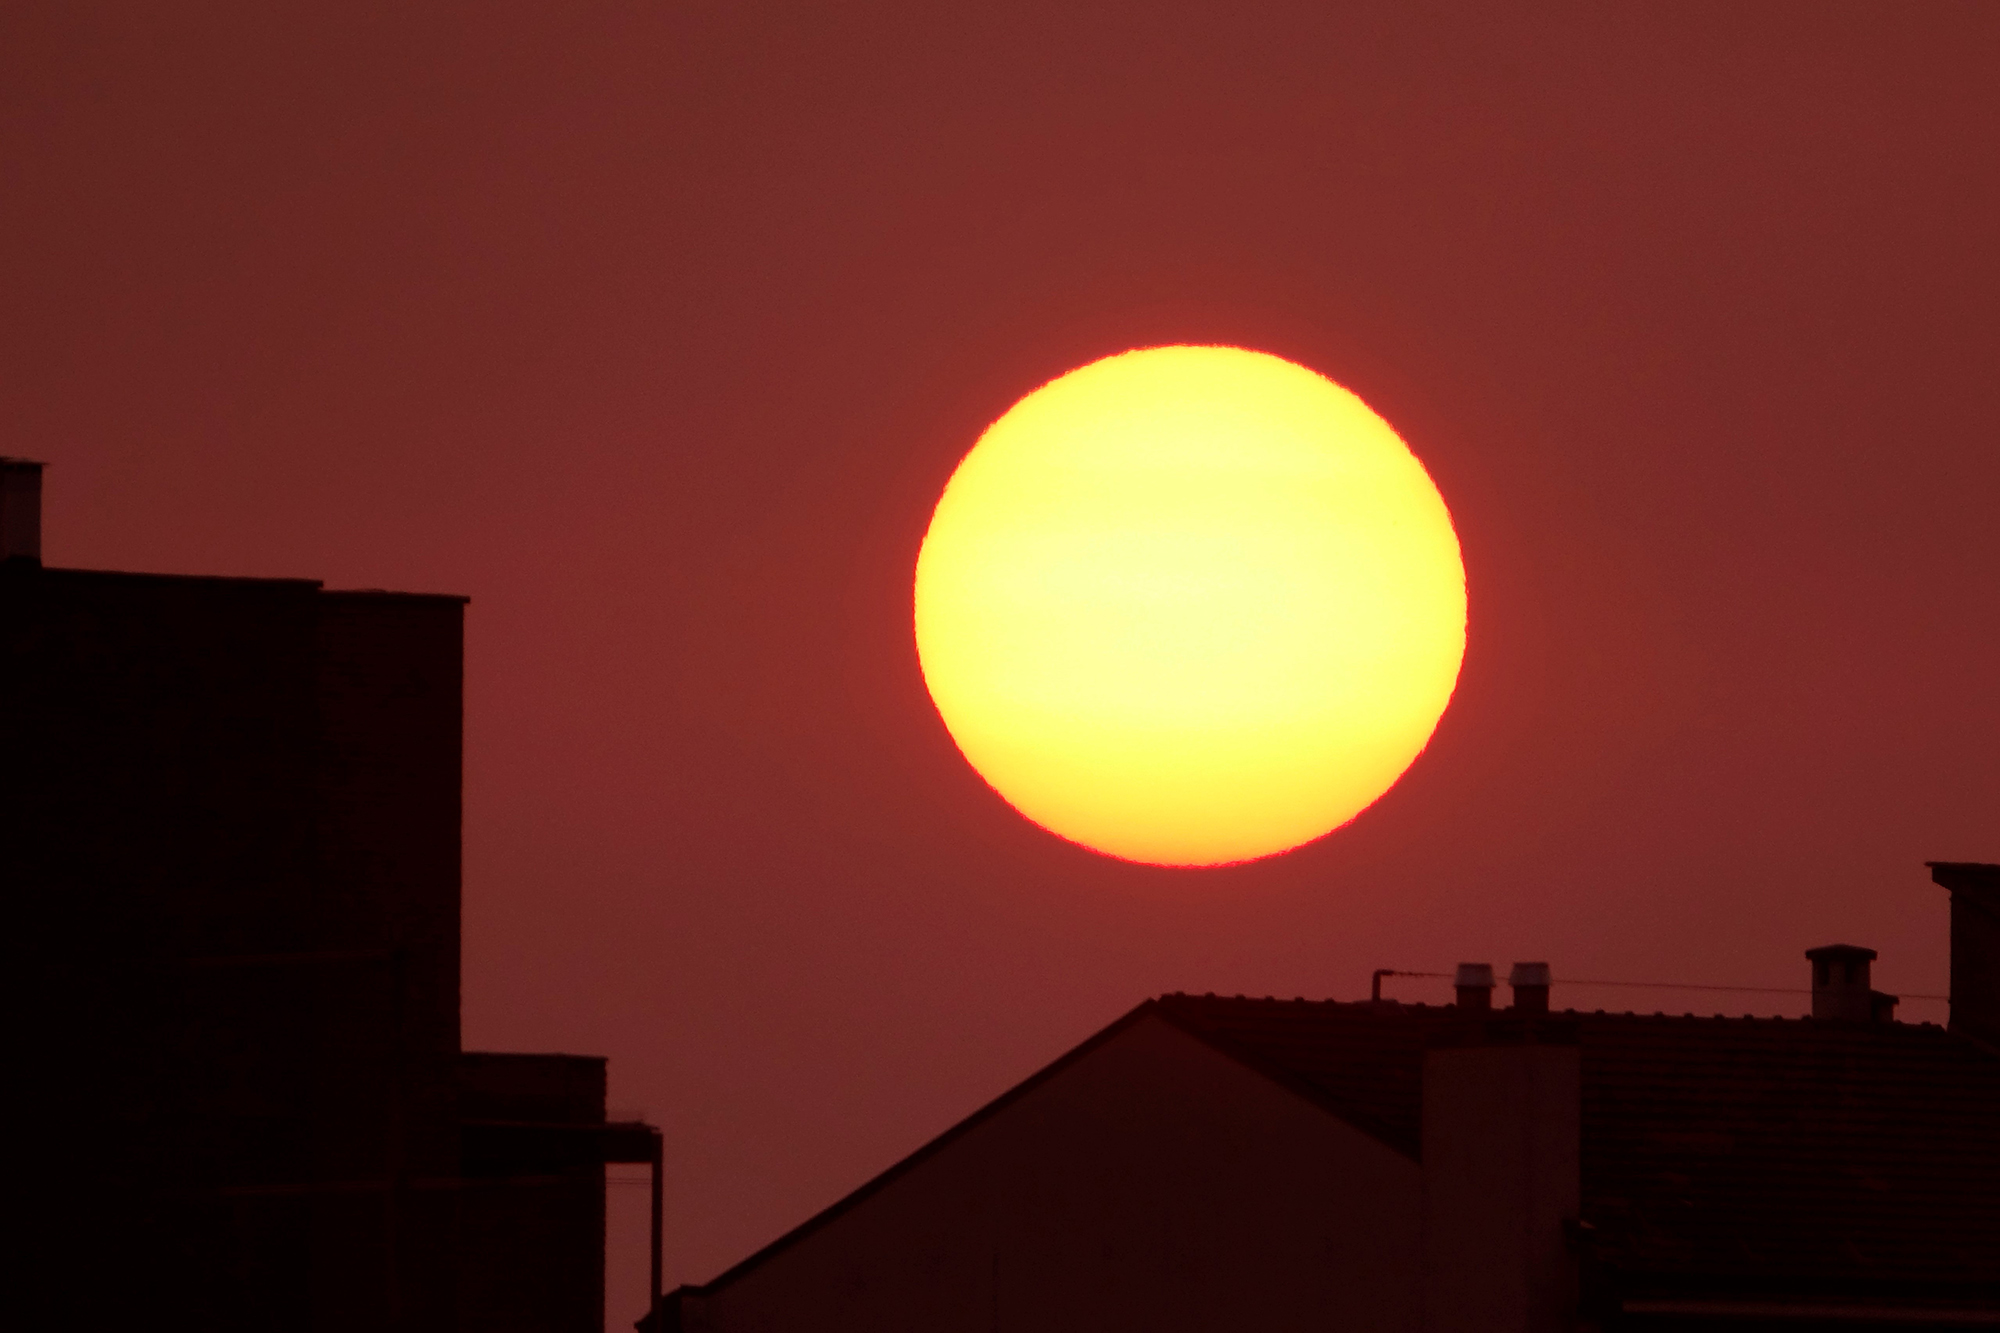 Sunrise of a hot July day in the city...